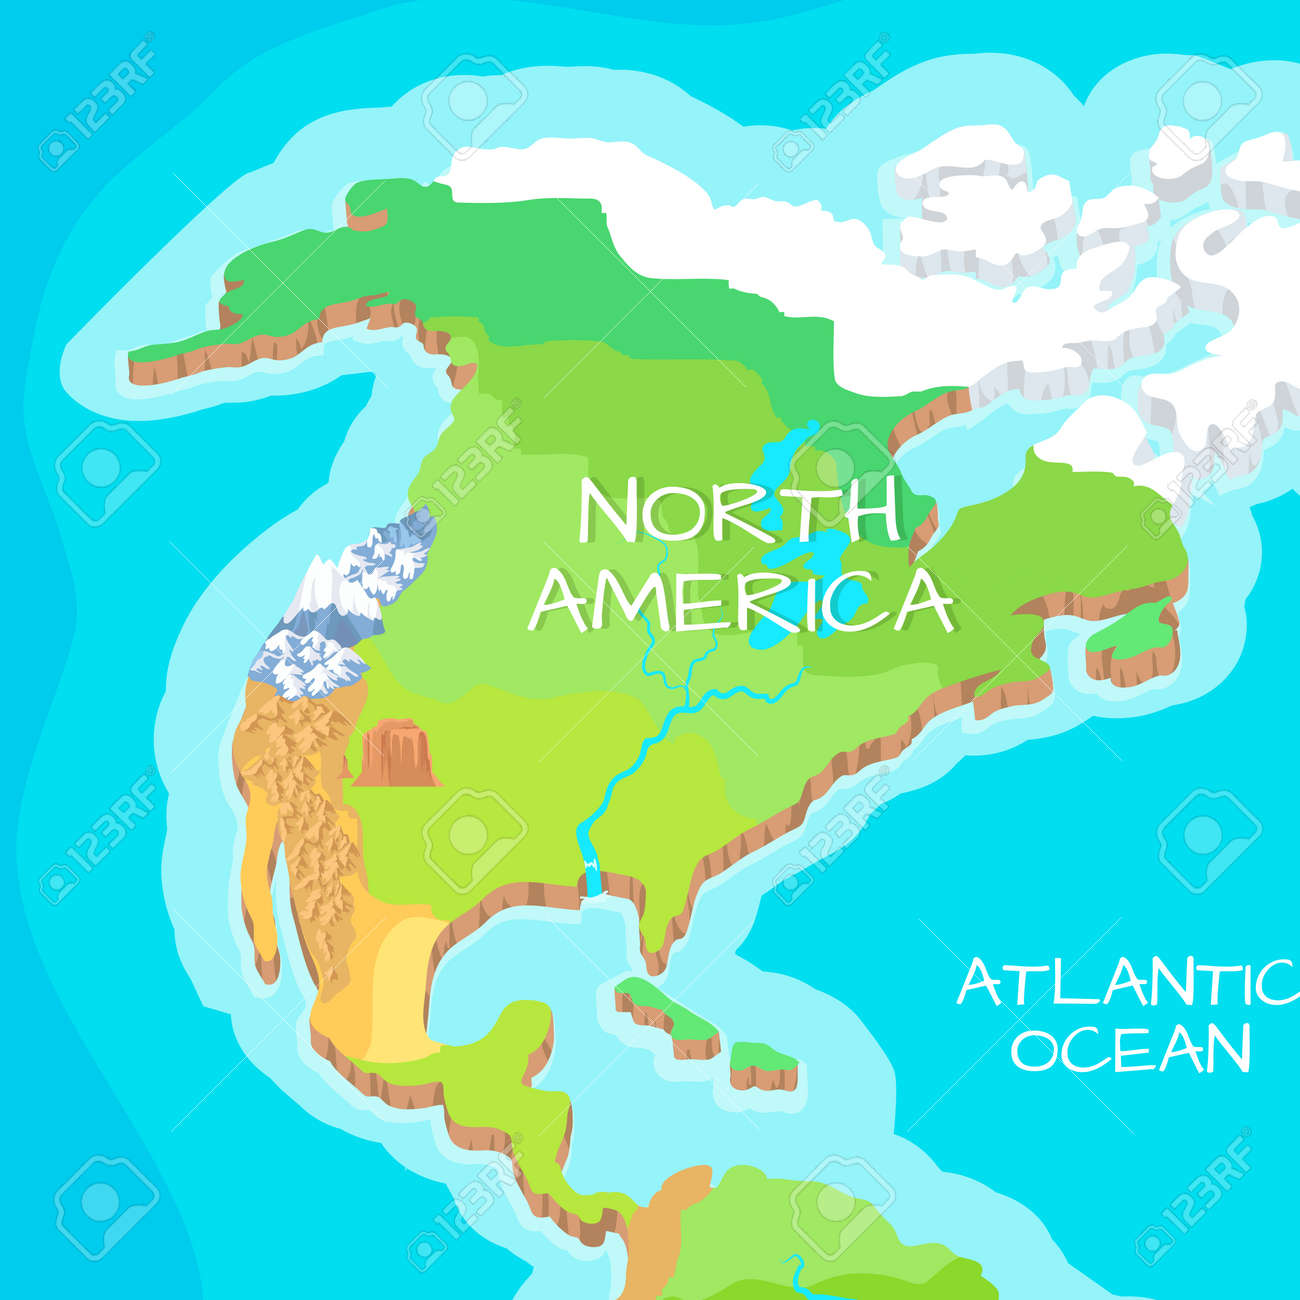 North America Mainland Cartoon Relief Map Stock Photo Picture And - North america relief map